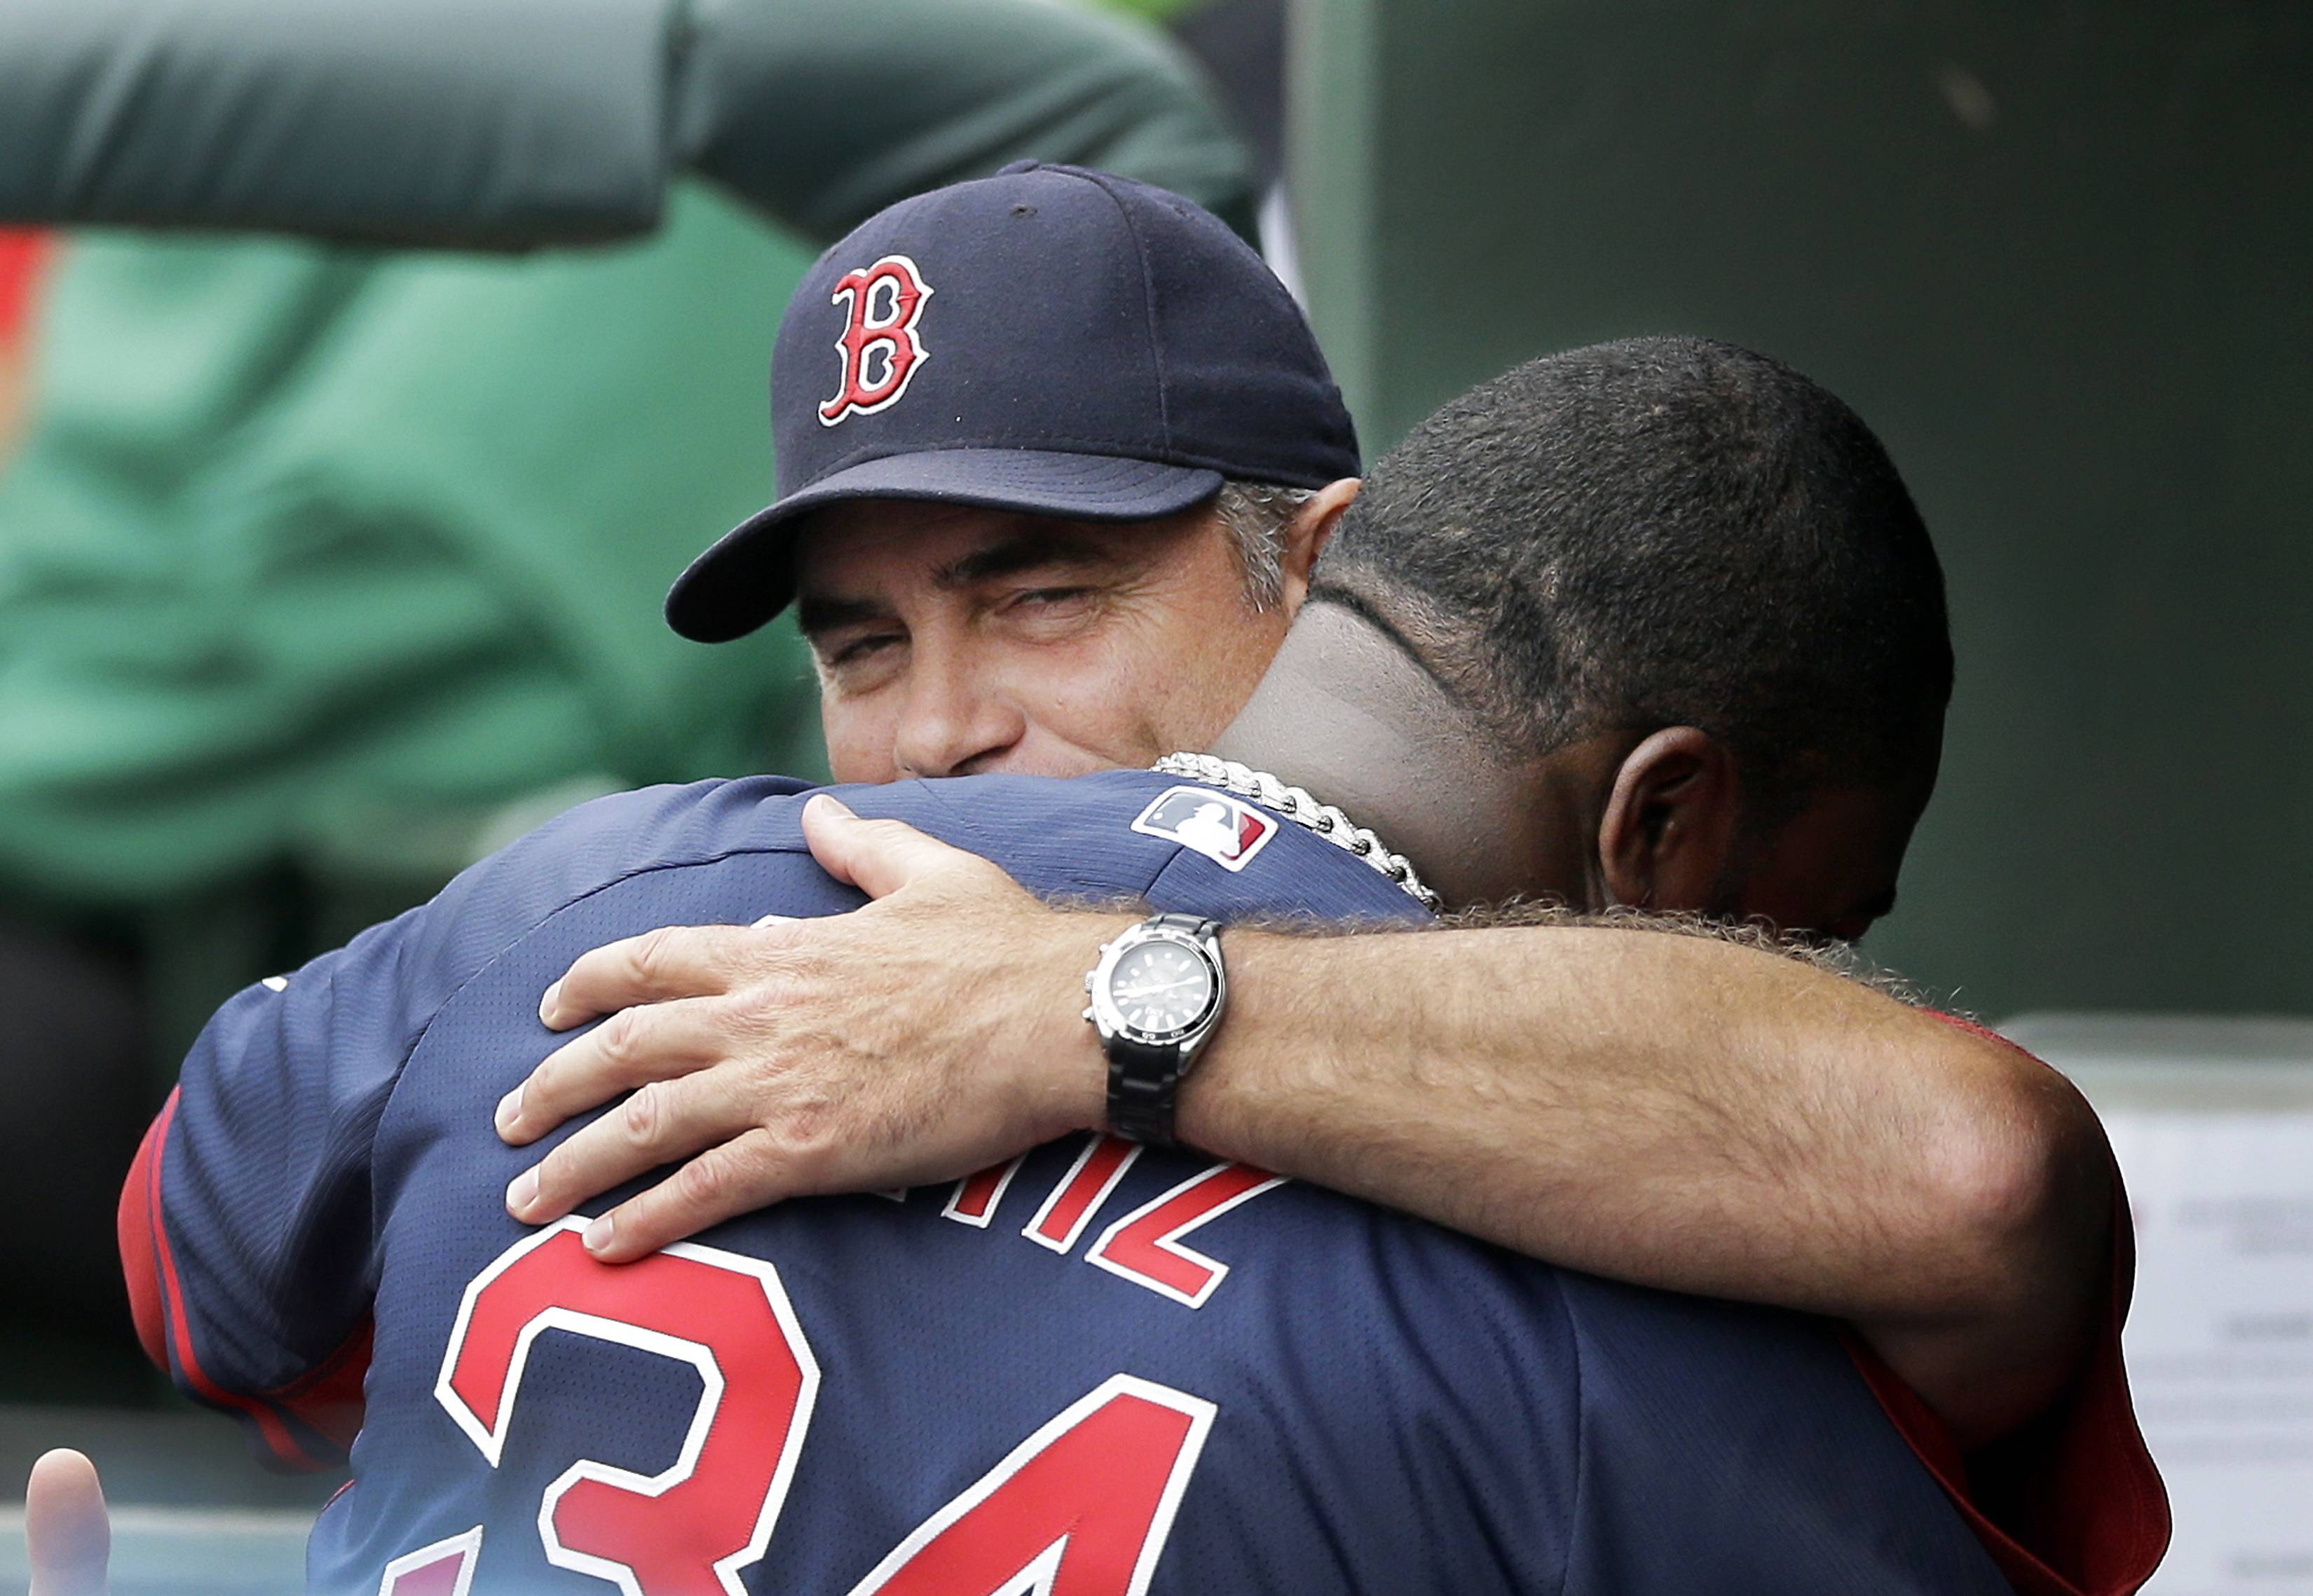 Boston Red Sox manager John Farrell hugs designated hitter David Ortiz, right, in the dugout before a spring exhibition baseball game against the Baltimore Orioles in Sarasota, Fla., Monday, March 24, 2014.